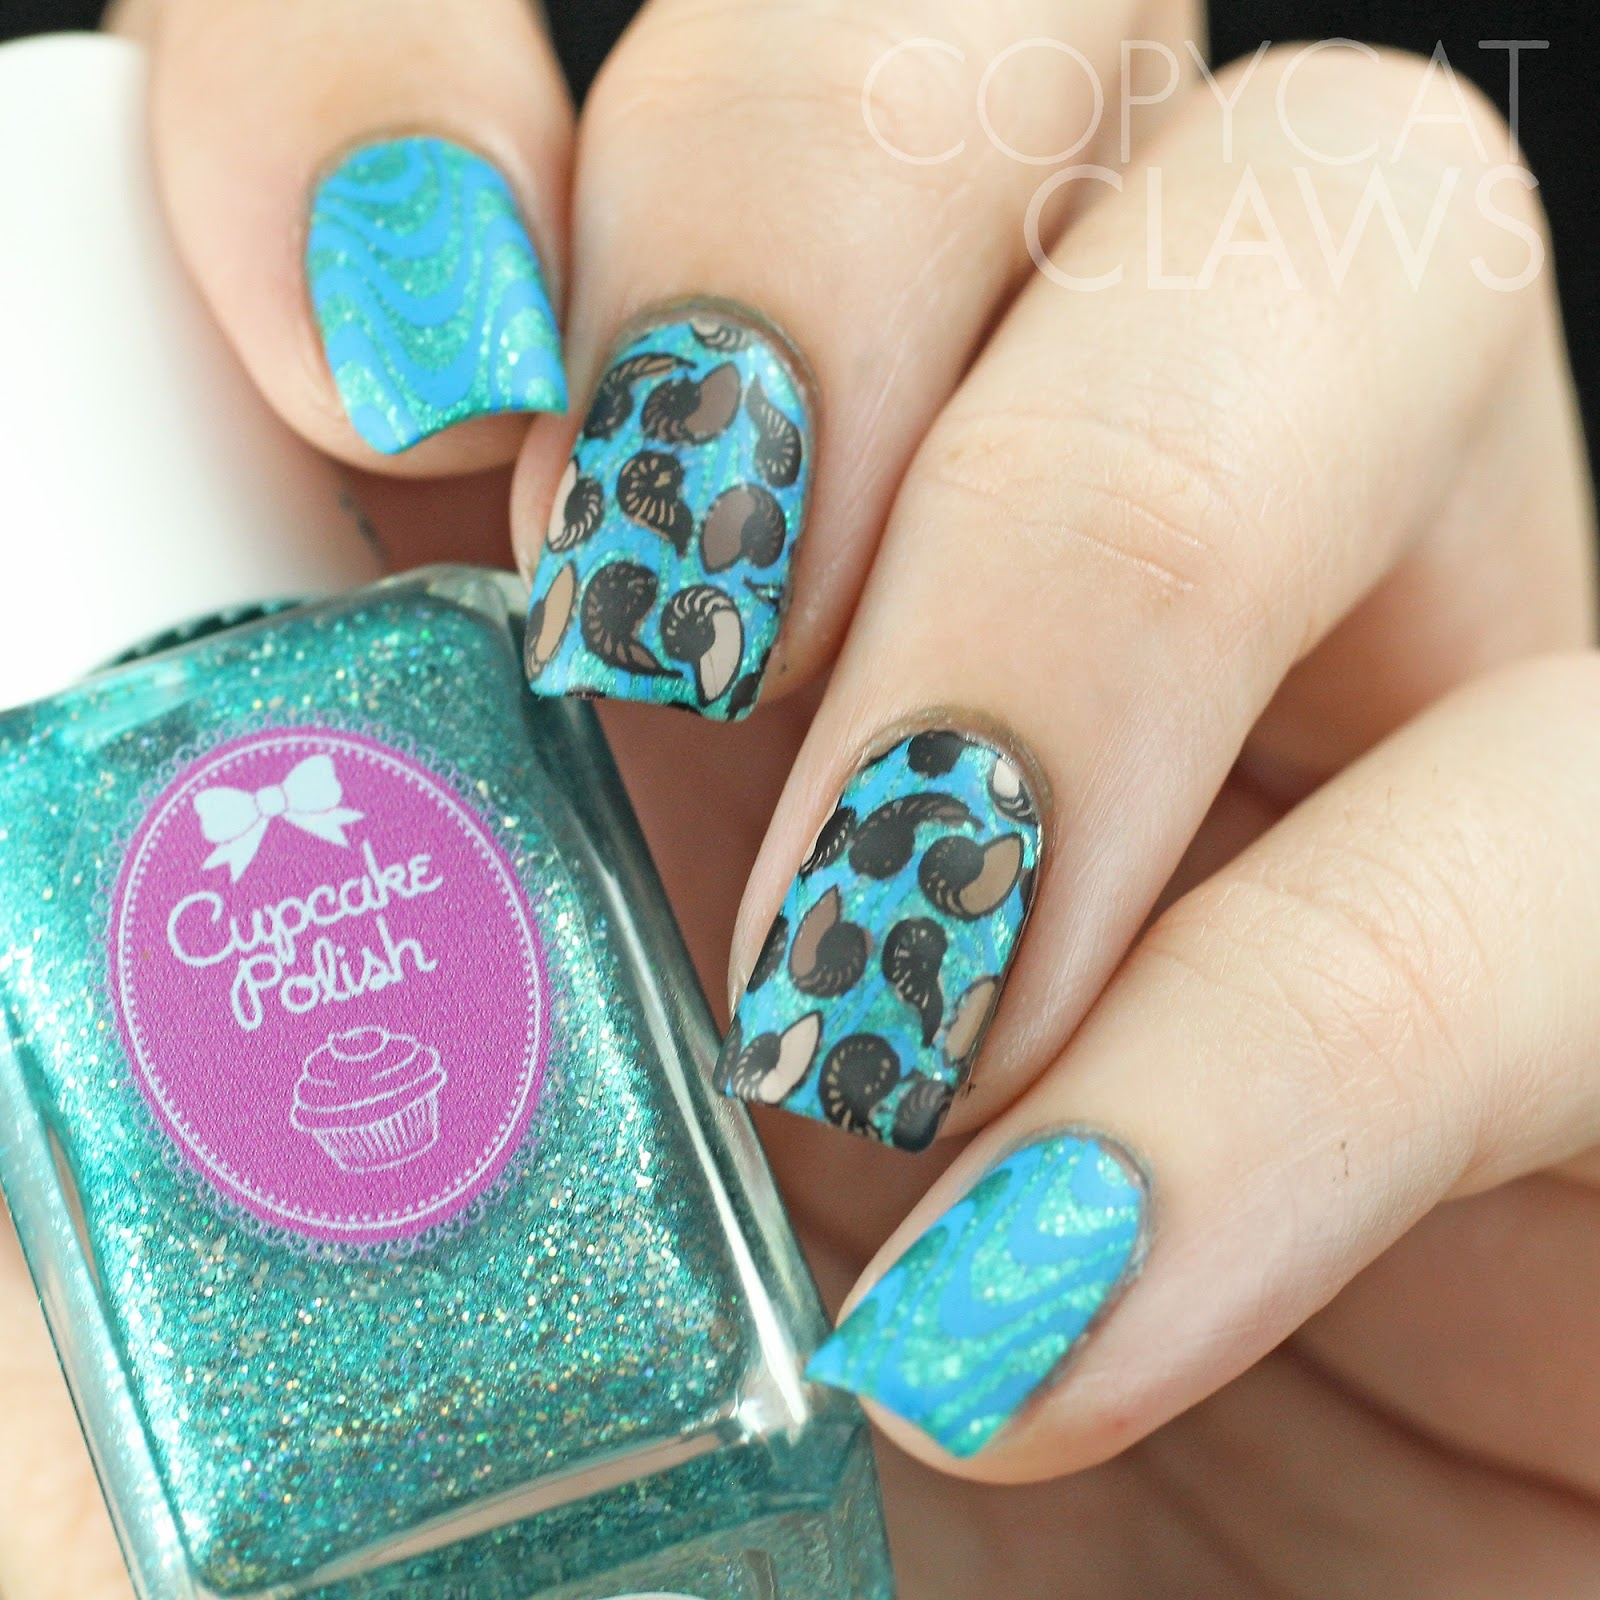 Copycat Claws Blue Color Block Nail Art: Copycat Claws: All The Light We Cannot See Nail Art